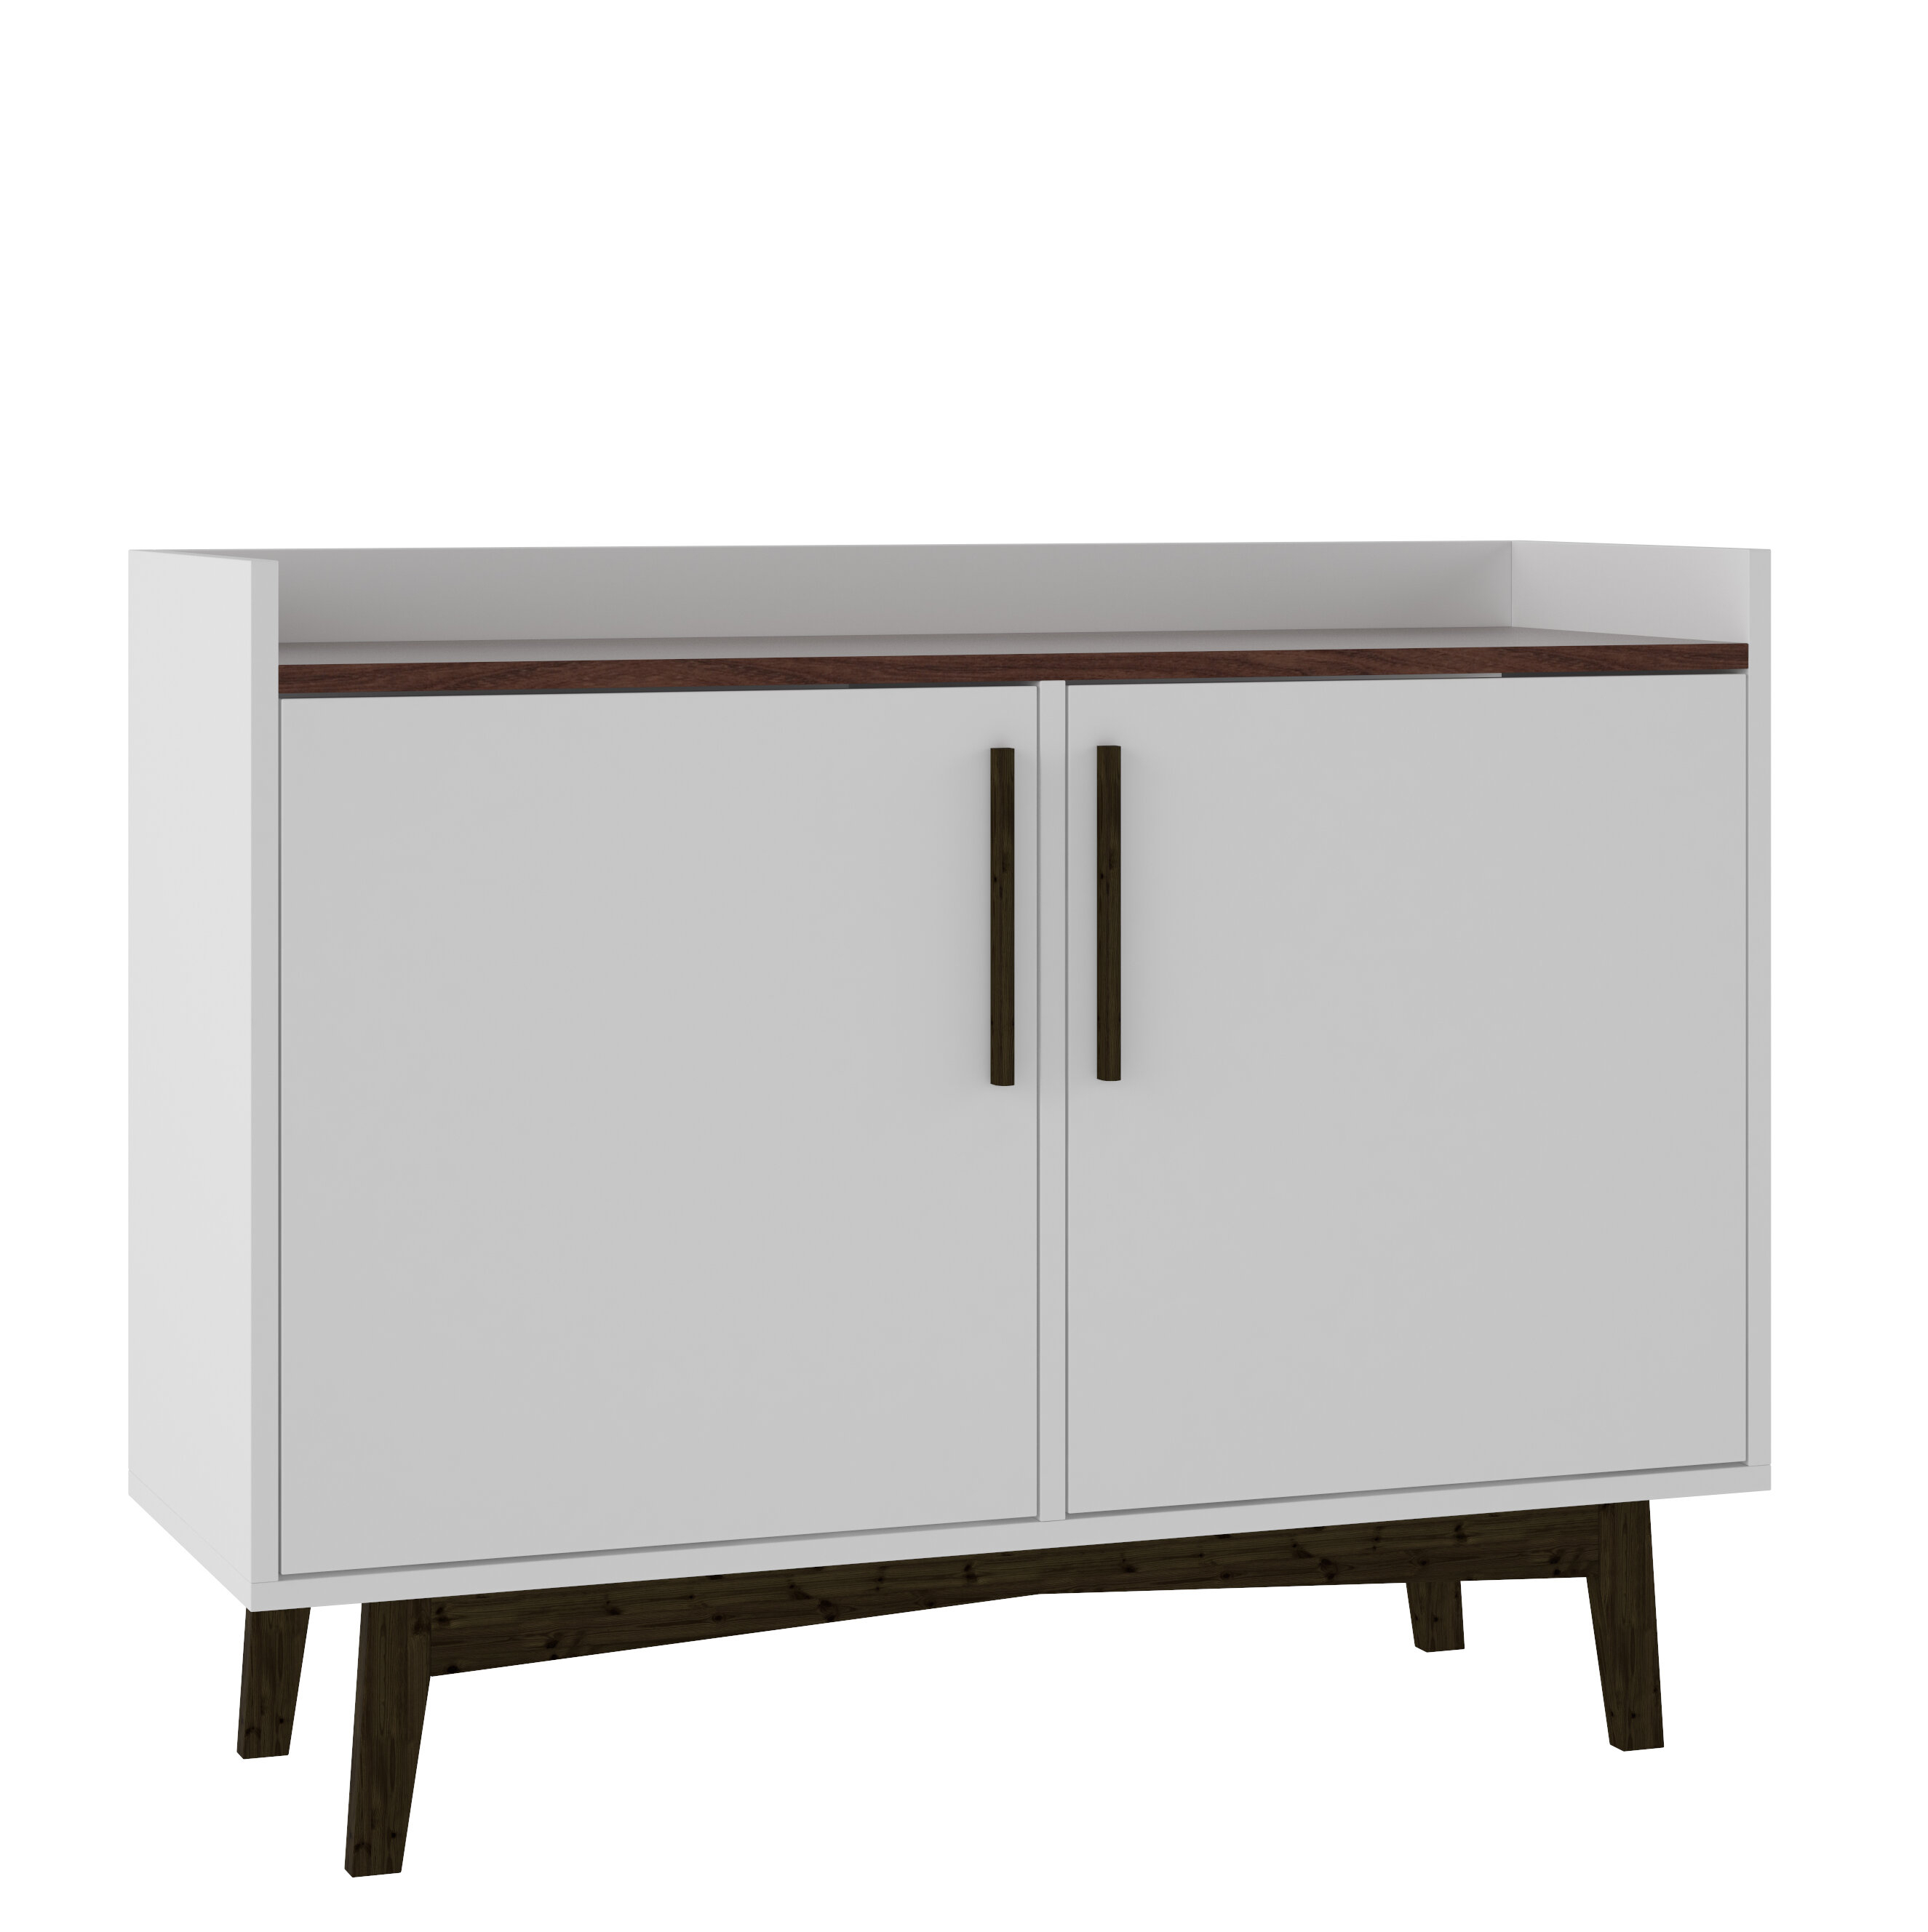 Headrick Mid Century Modern Sideboard Within Contemporary Wooden Buffets With One Side Door Storage Cabinets And Two Drawers (View 10 of 30)